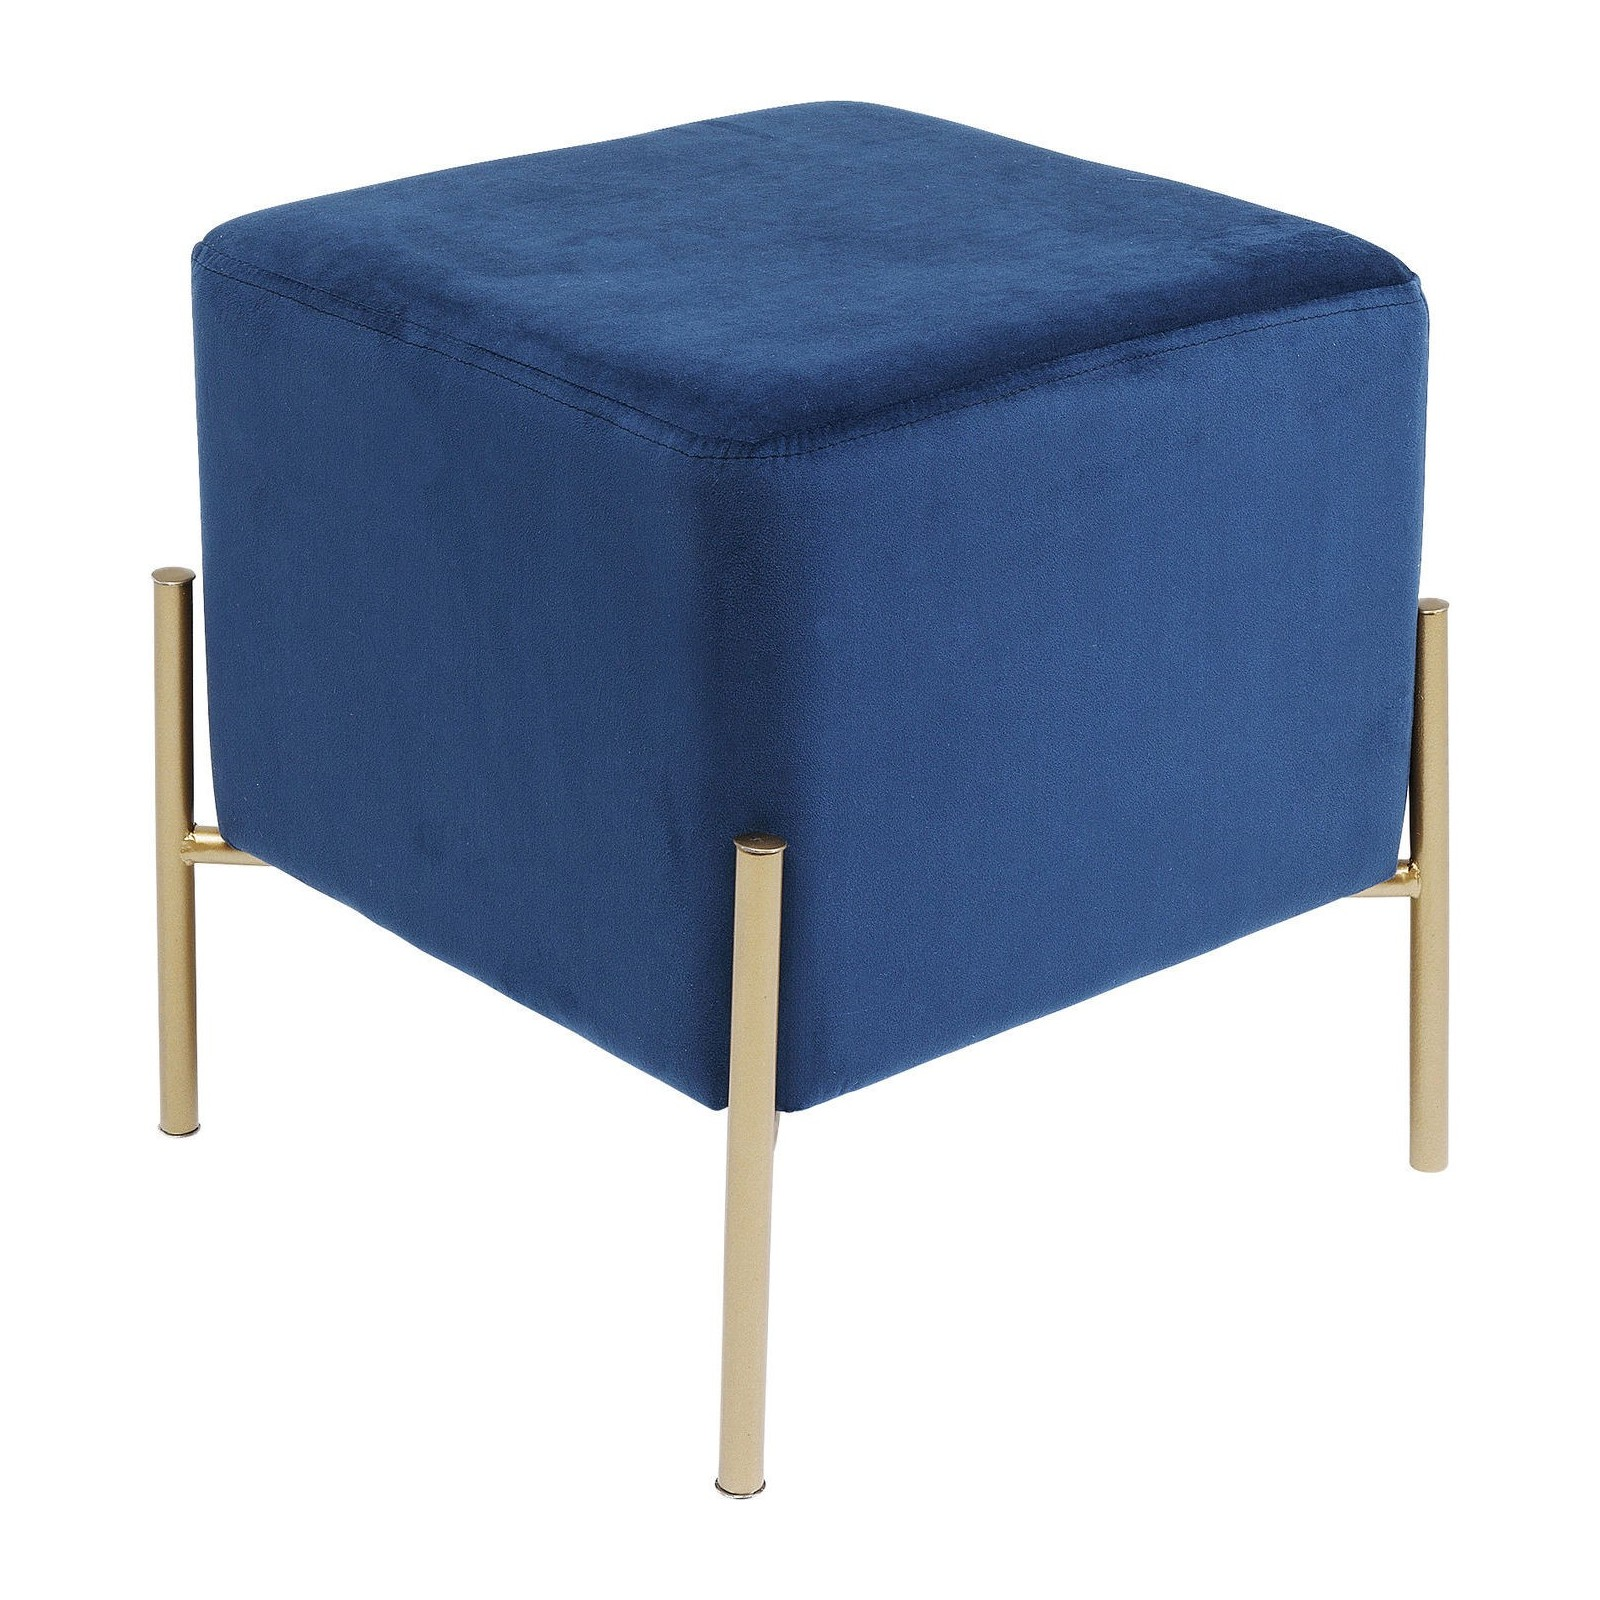 tabouret contemporain bleu et dor franzi kare design. Black Bedroom Furniture Sets. Home Design Ideas